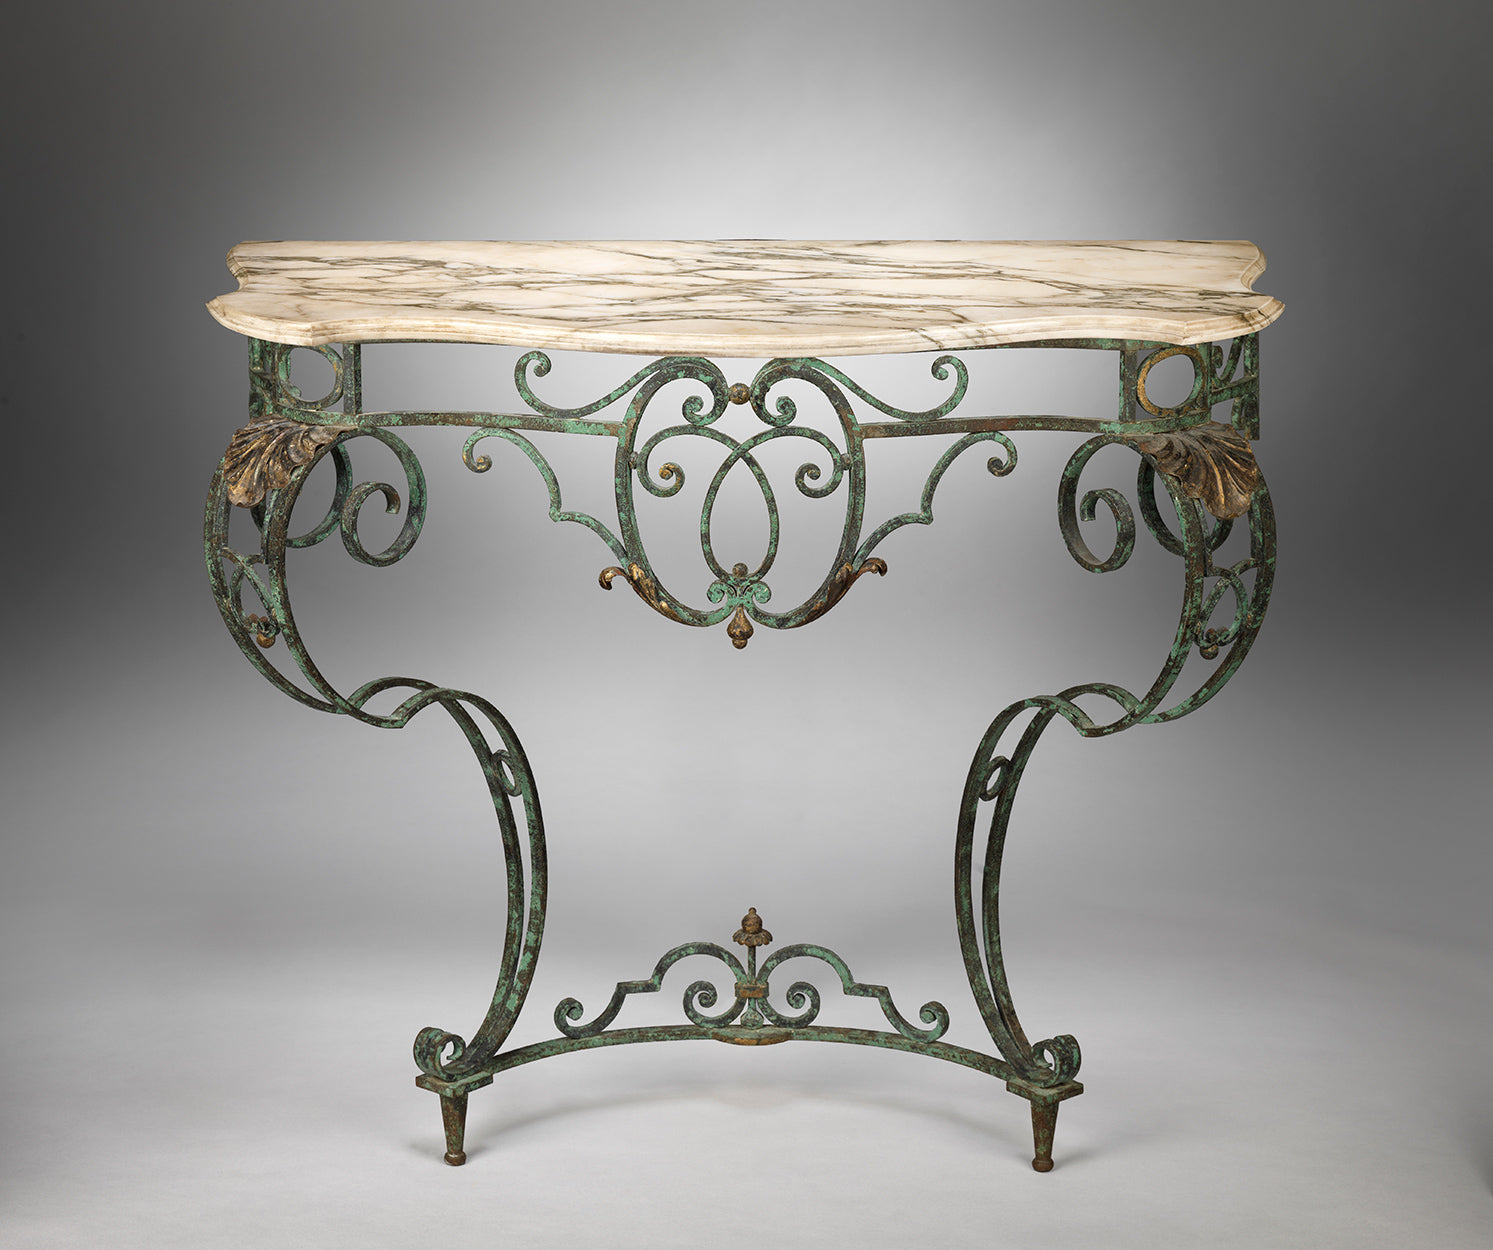 Provincial Classical Baroque Style Console Table